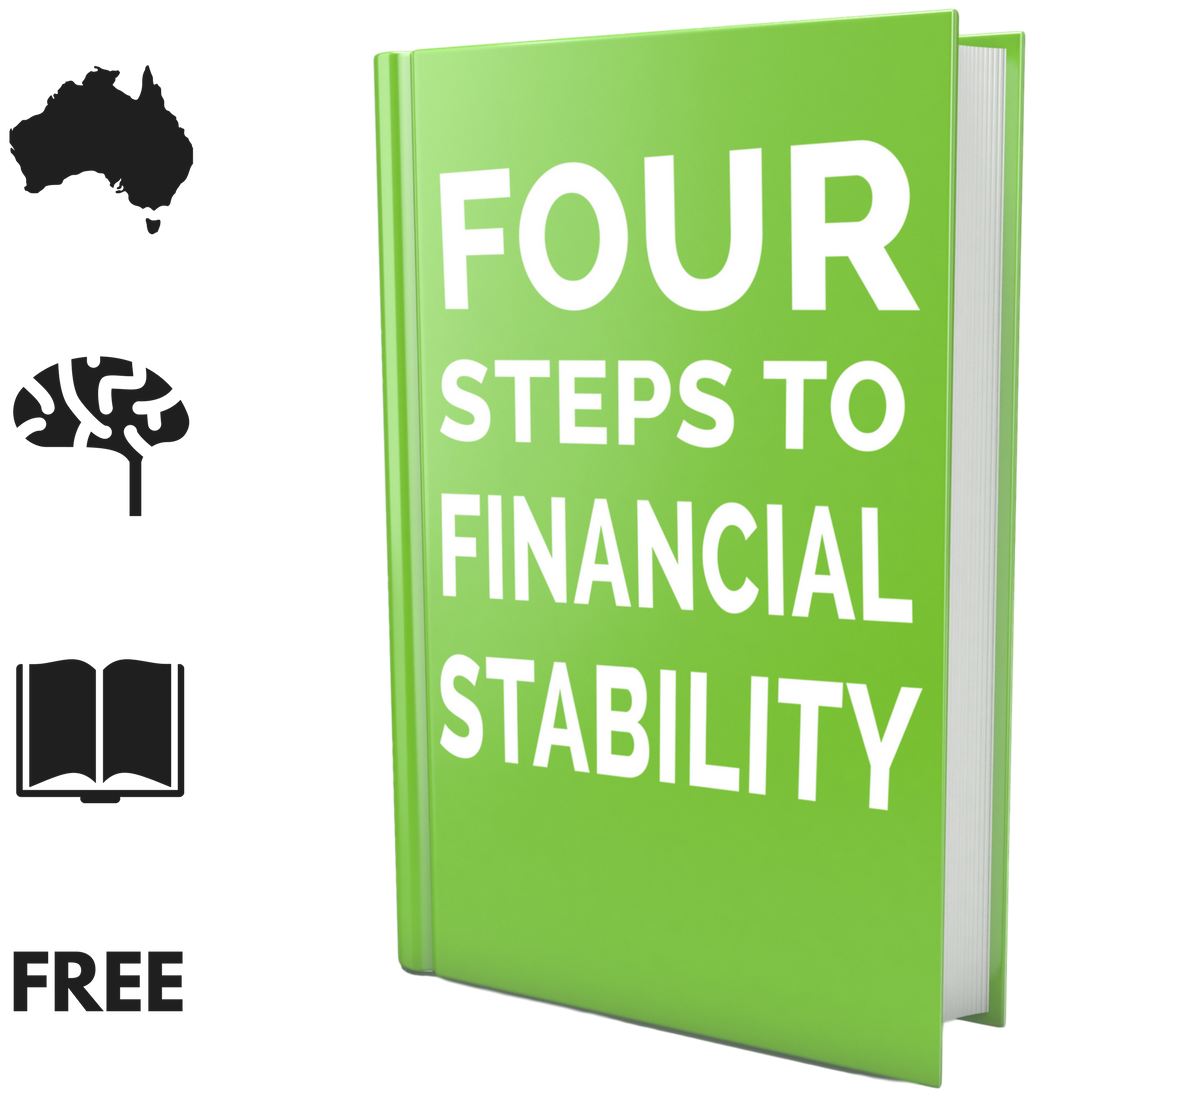 Four Steps to Financial Stability